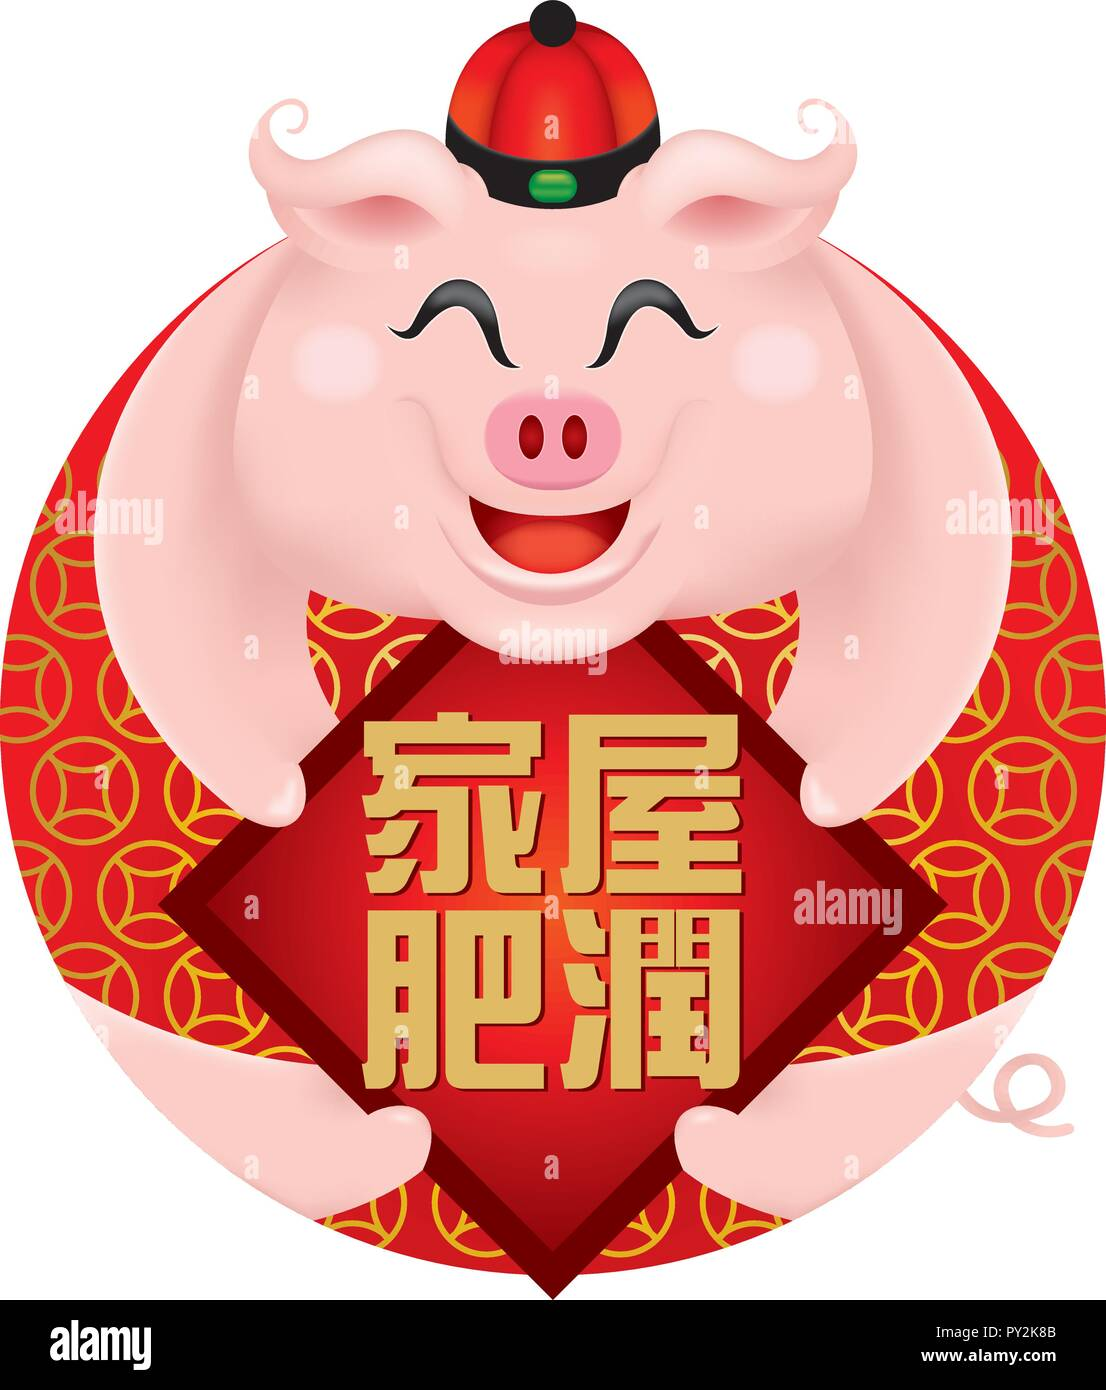 Cute little pig's image for Chinese New Year 2019, also the year of the pig. Caption: Family is harmony and prosperous. - Stock Image